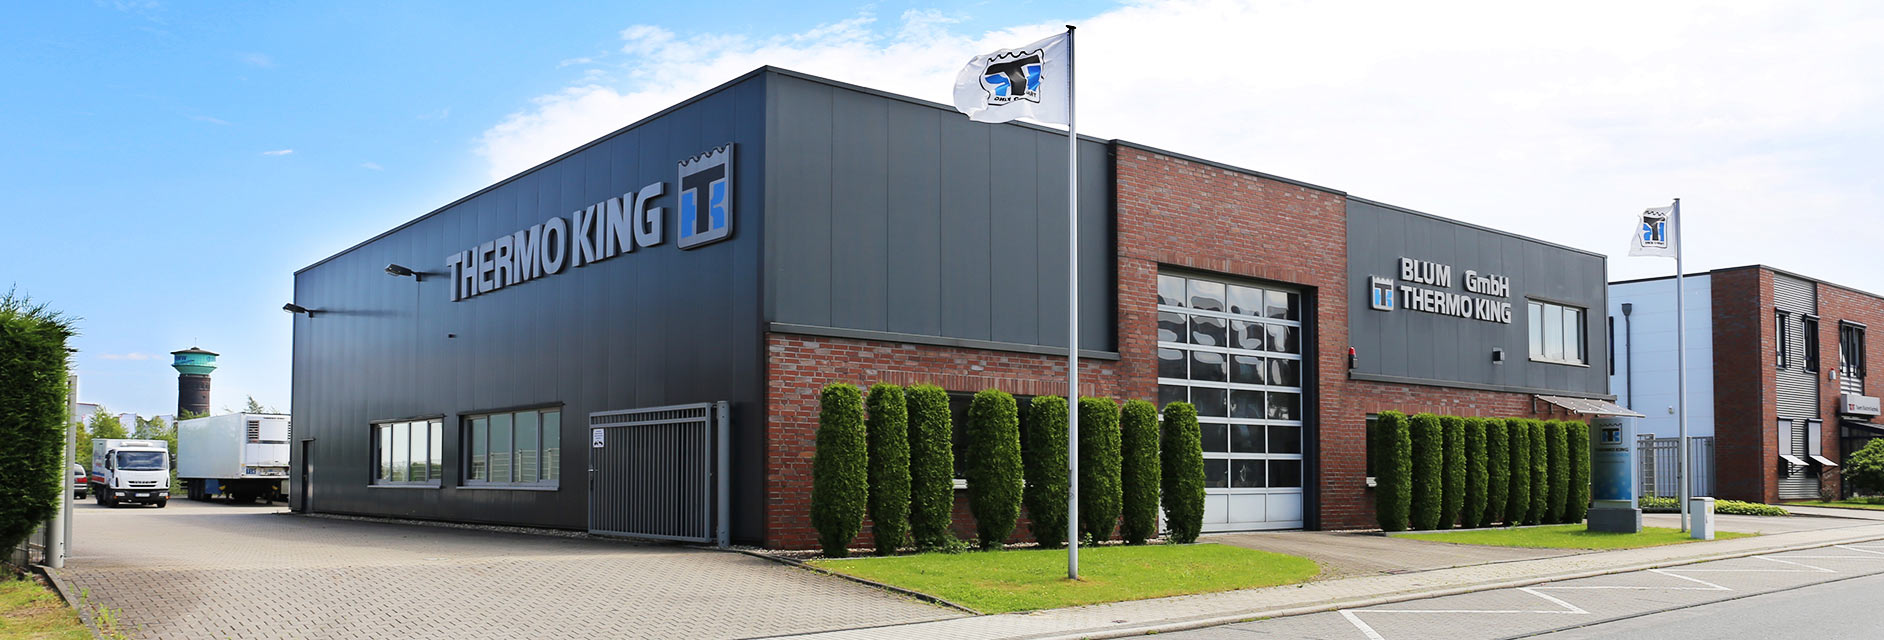 Thermo King Oberhausen Transportkühlung